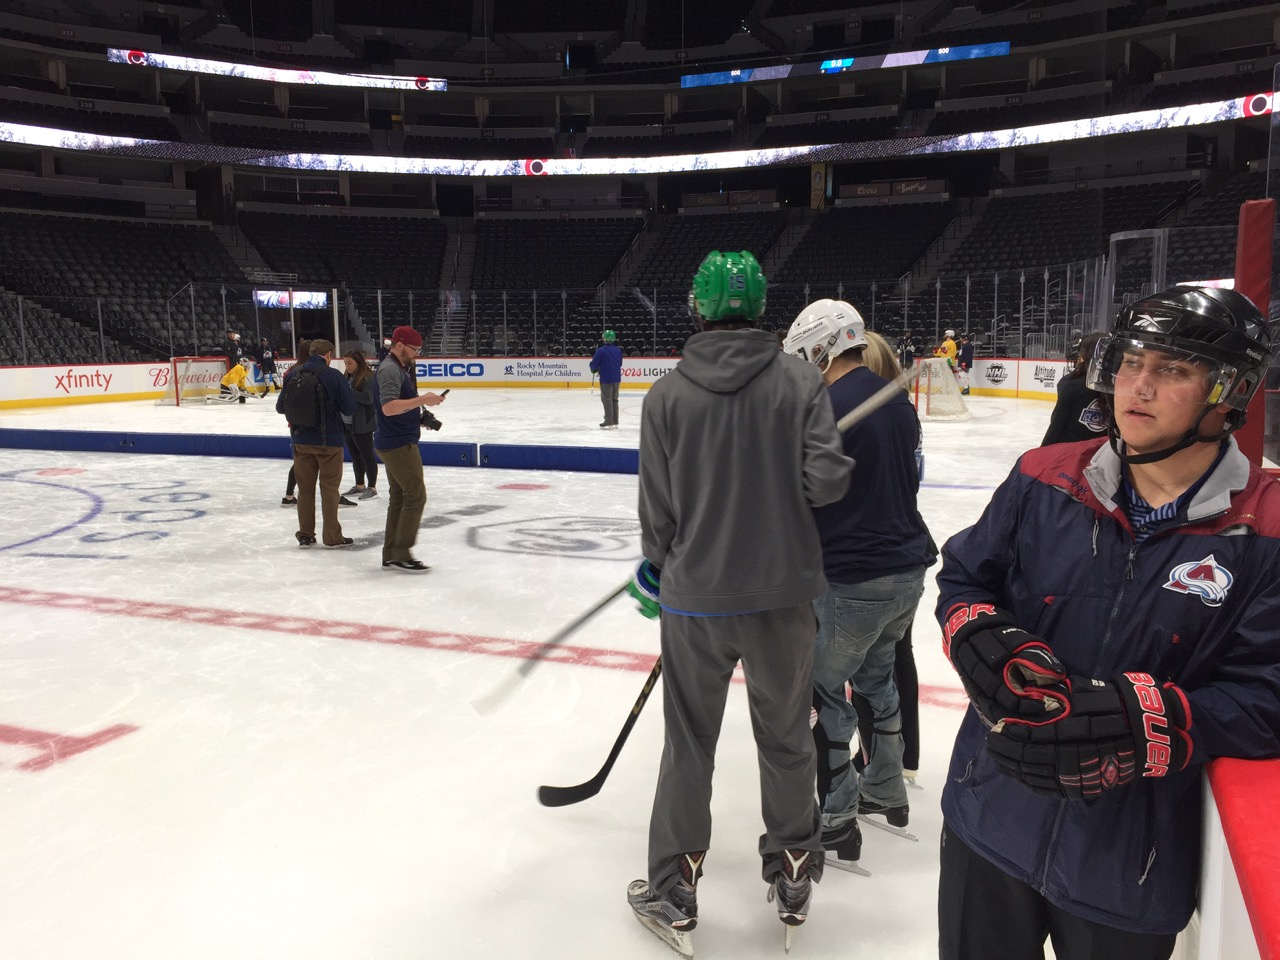 CCB students go out on the ice in their hockey gear